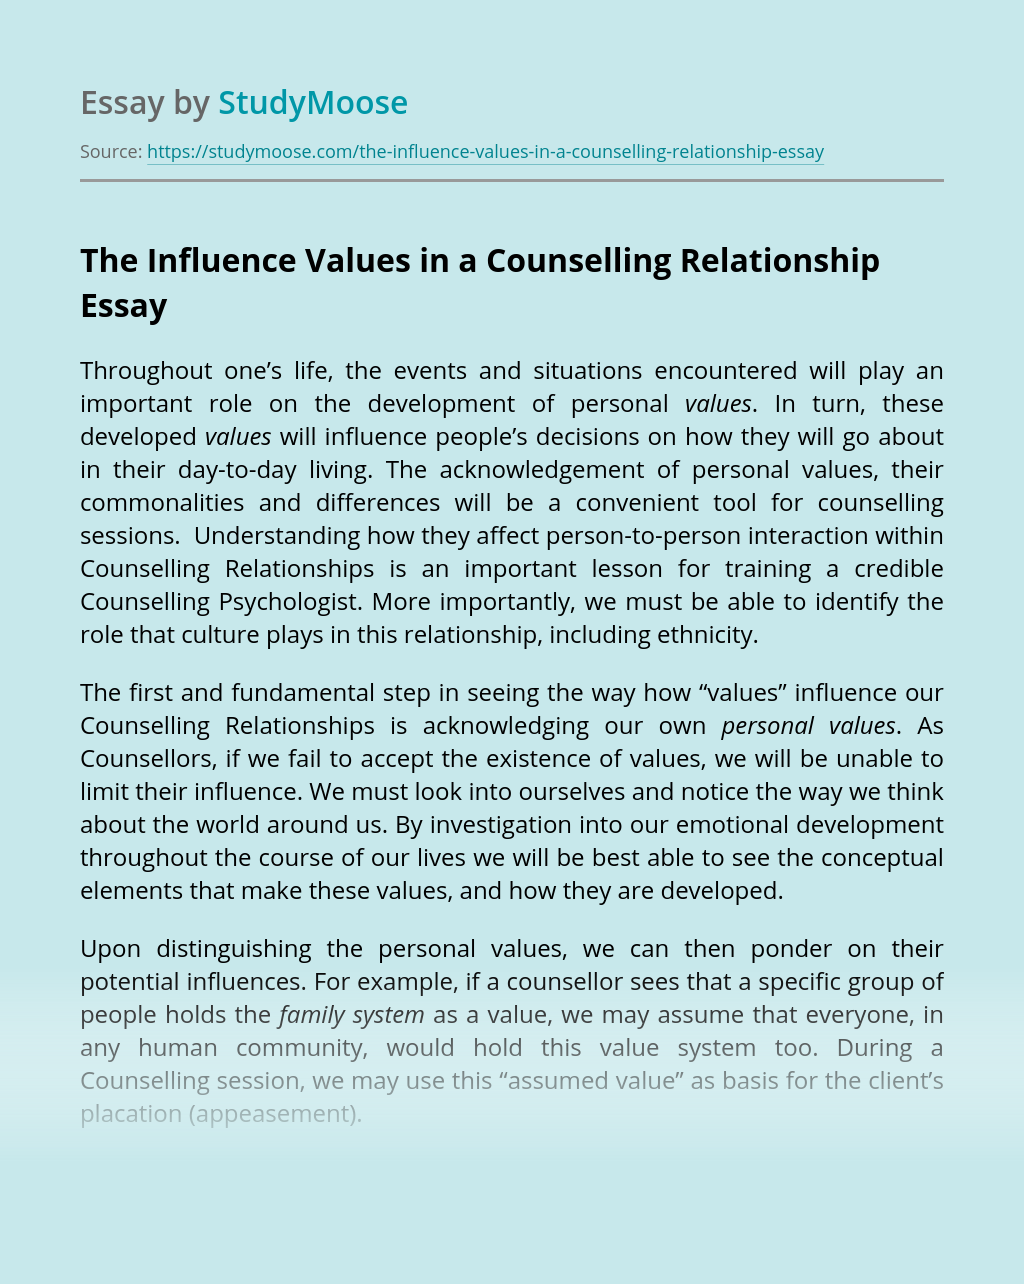 The Influence Values in a Counselling Relationship